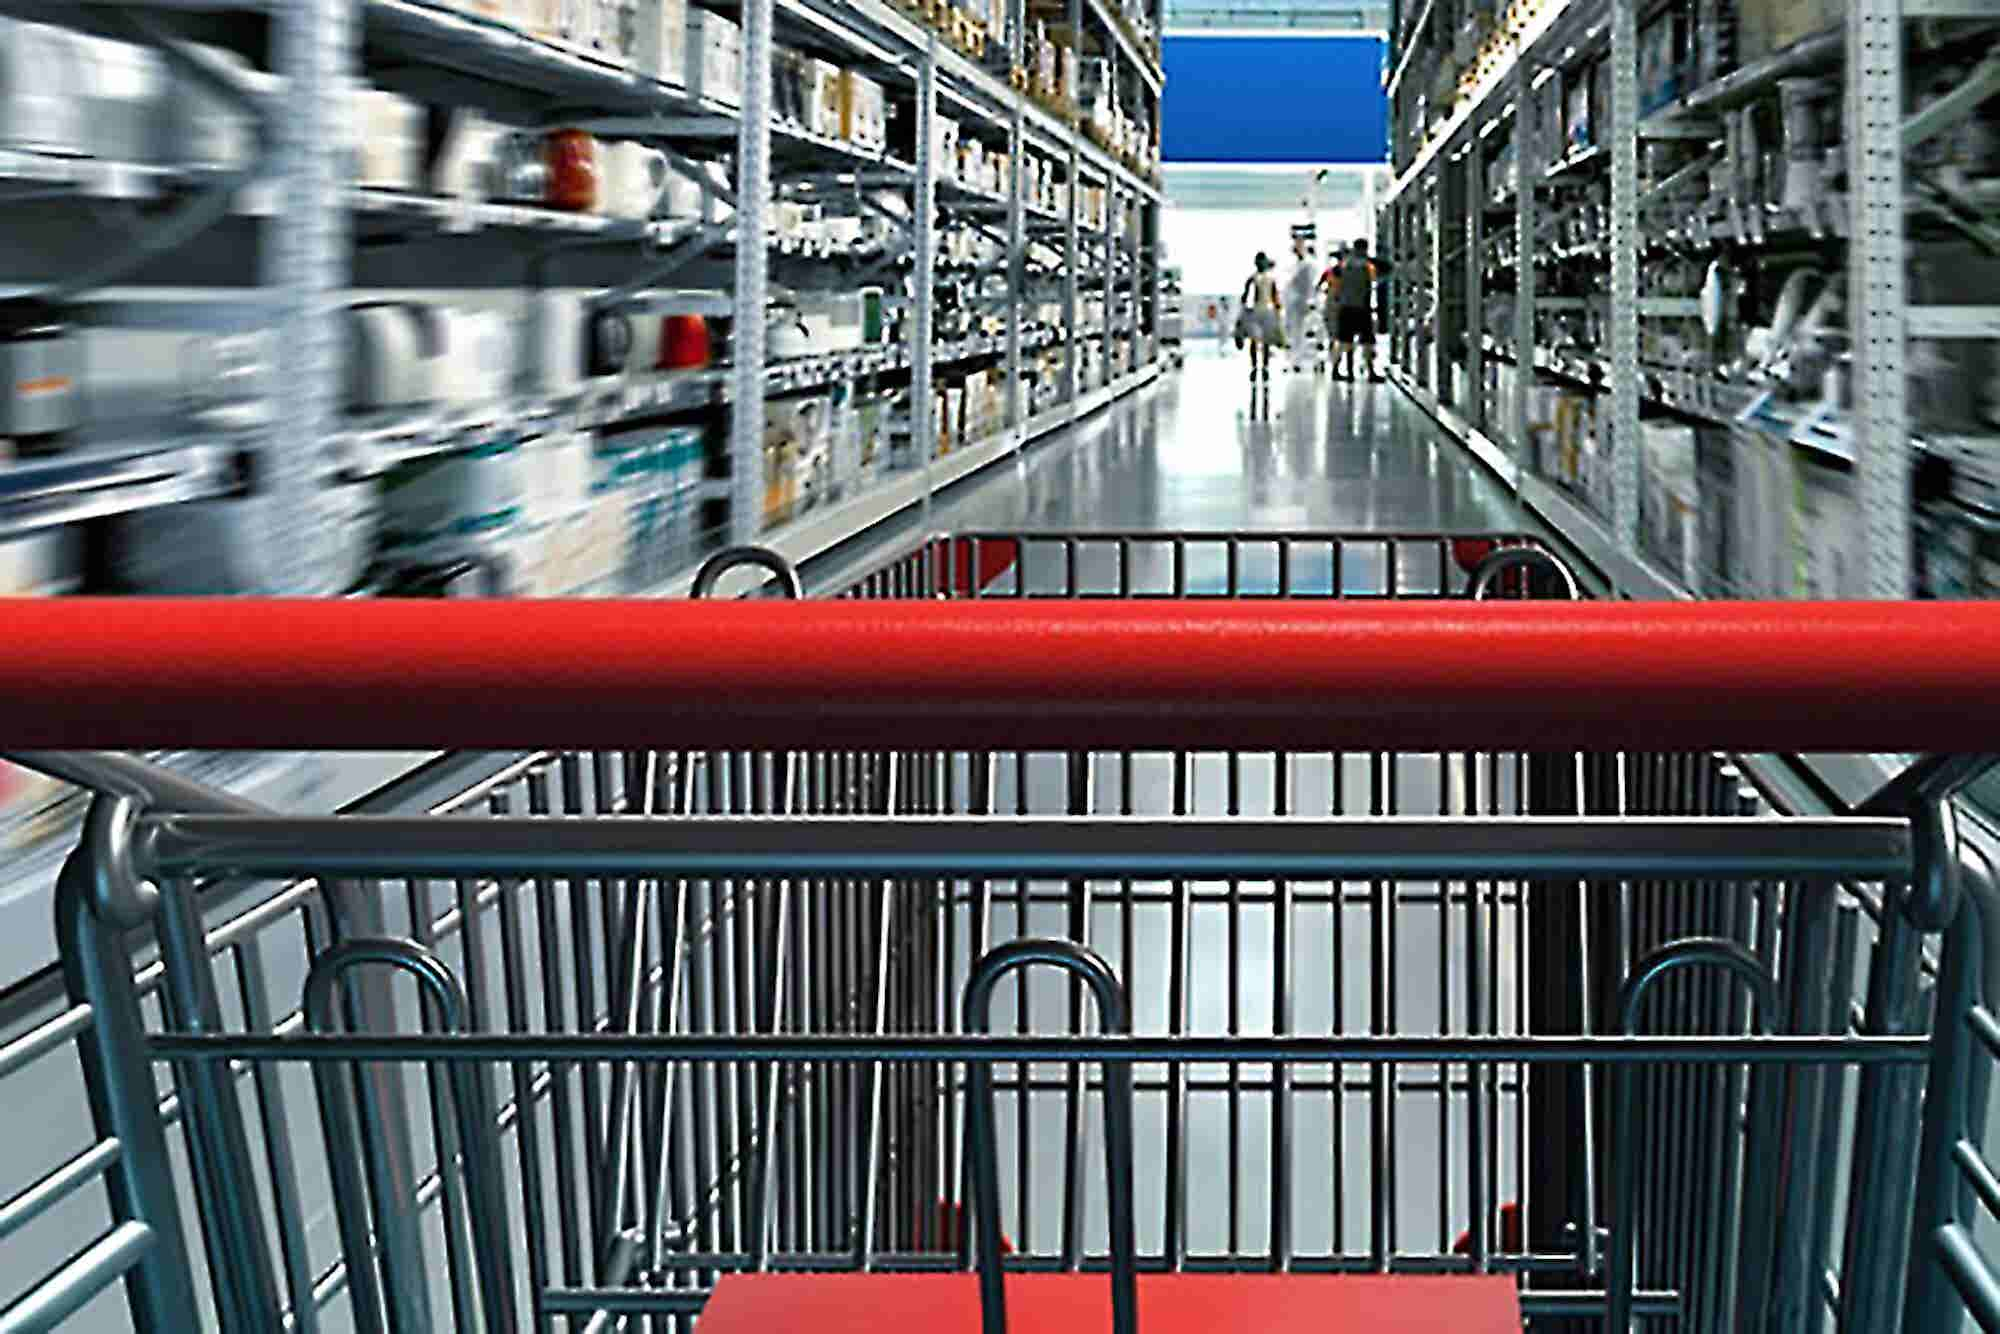 5 Steps to Get Your Product On Store Shelves